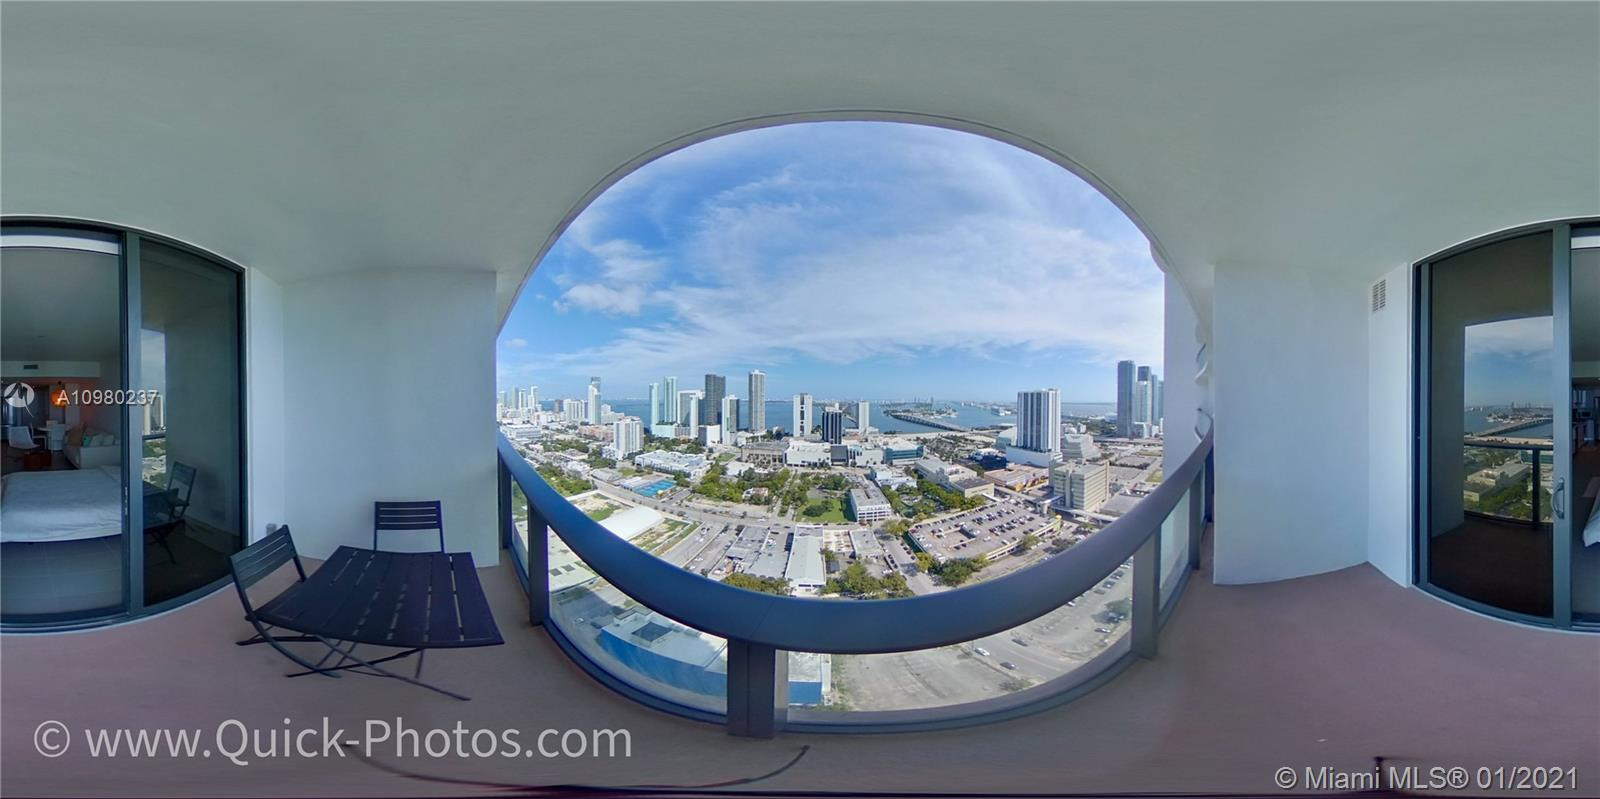 Incredible studio with spectacular views, located in Canvas's new luxury condo in the heart of Miami